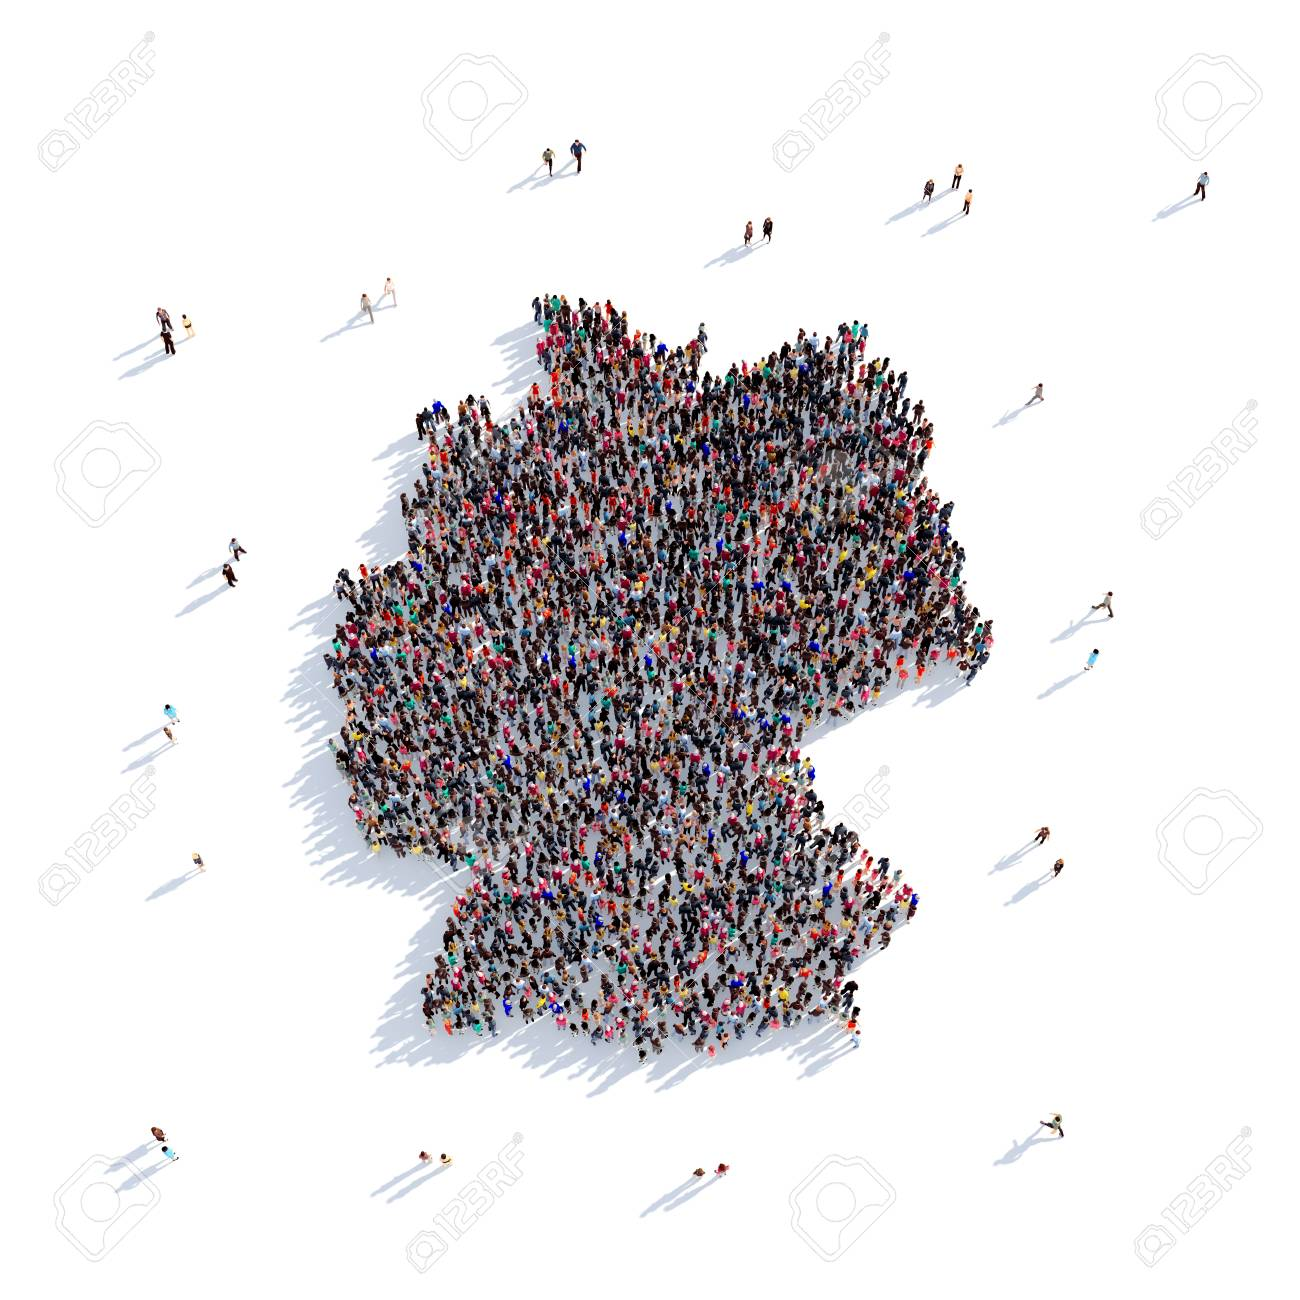 Large Map Of Germany.Large And Creative Group Of People Gathered Together In The Form